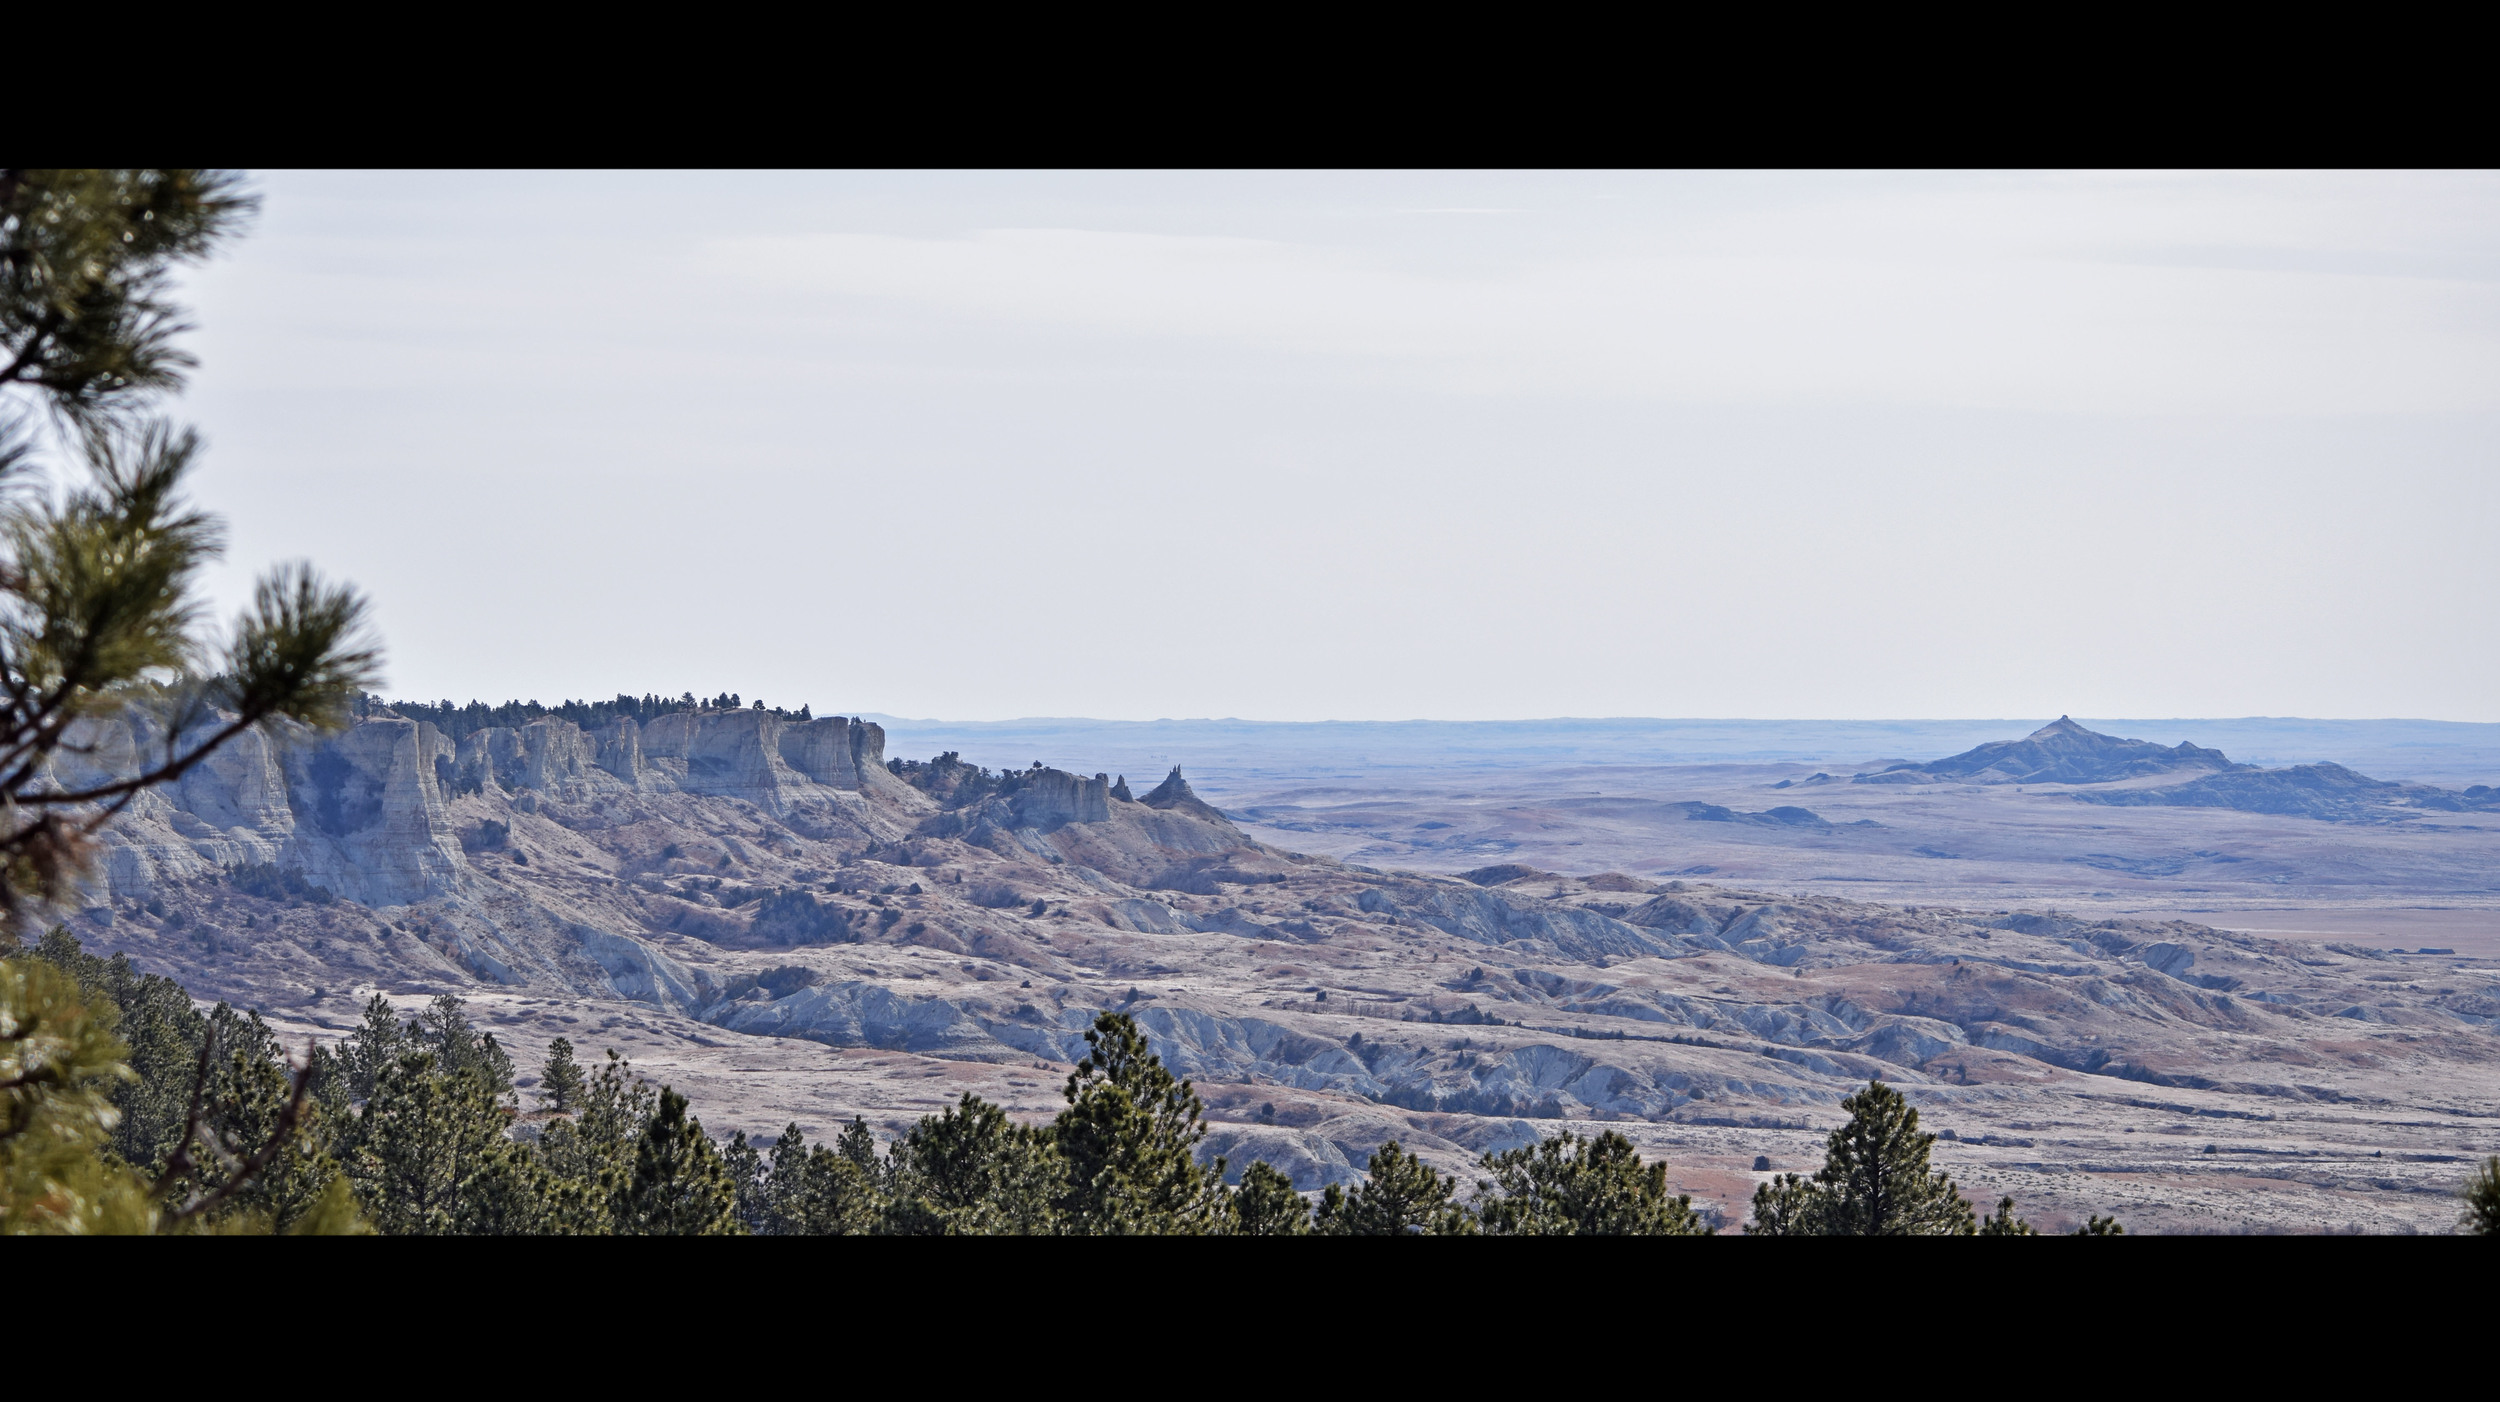 The northwest region of South Dakota is full of rolling plains, rocky buttes,winding creek and river beds.